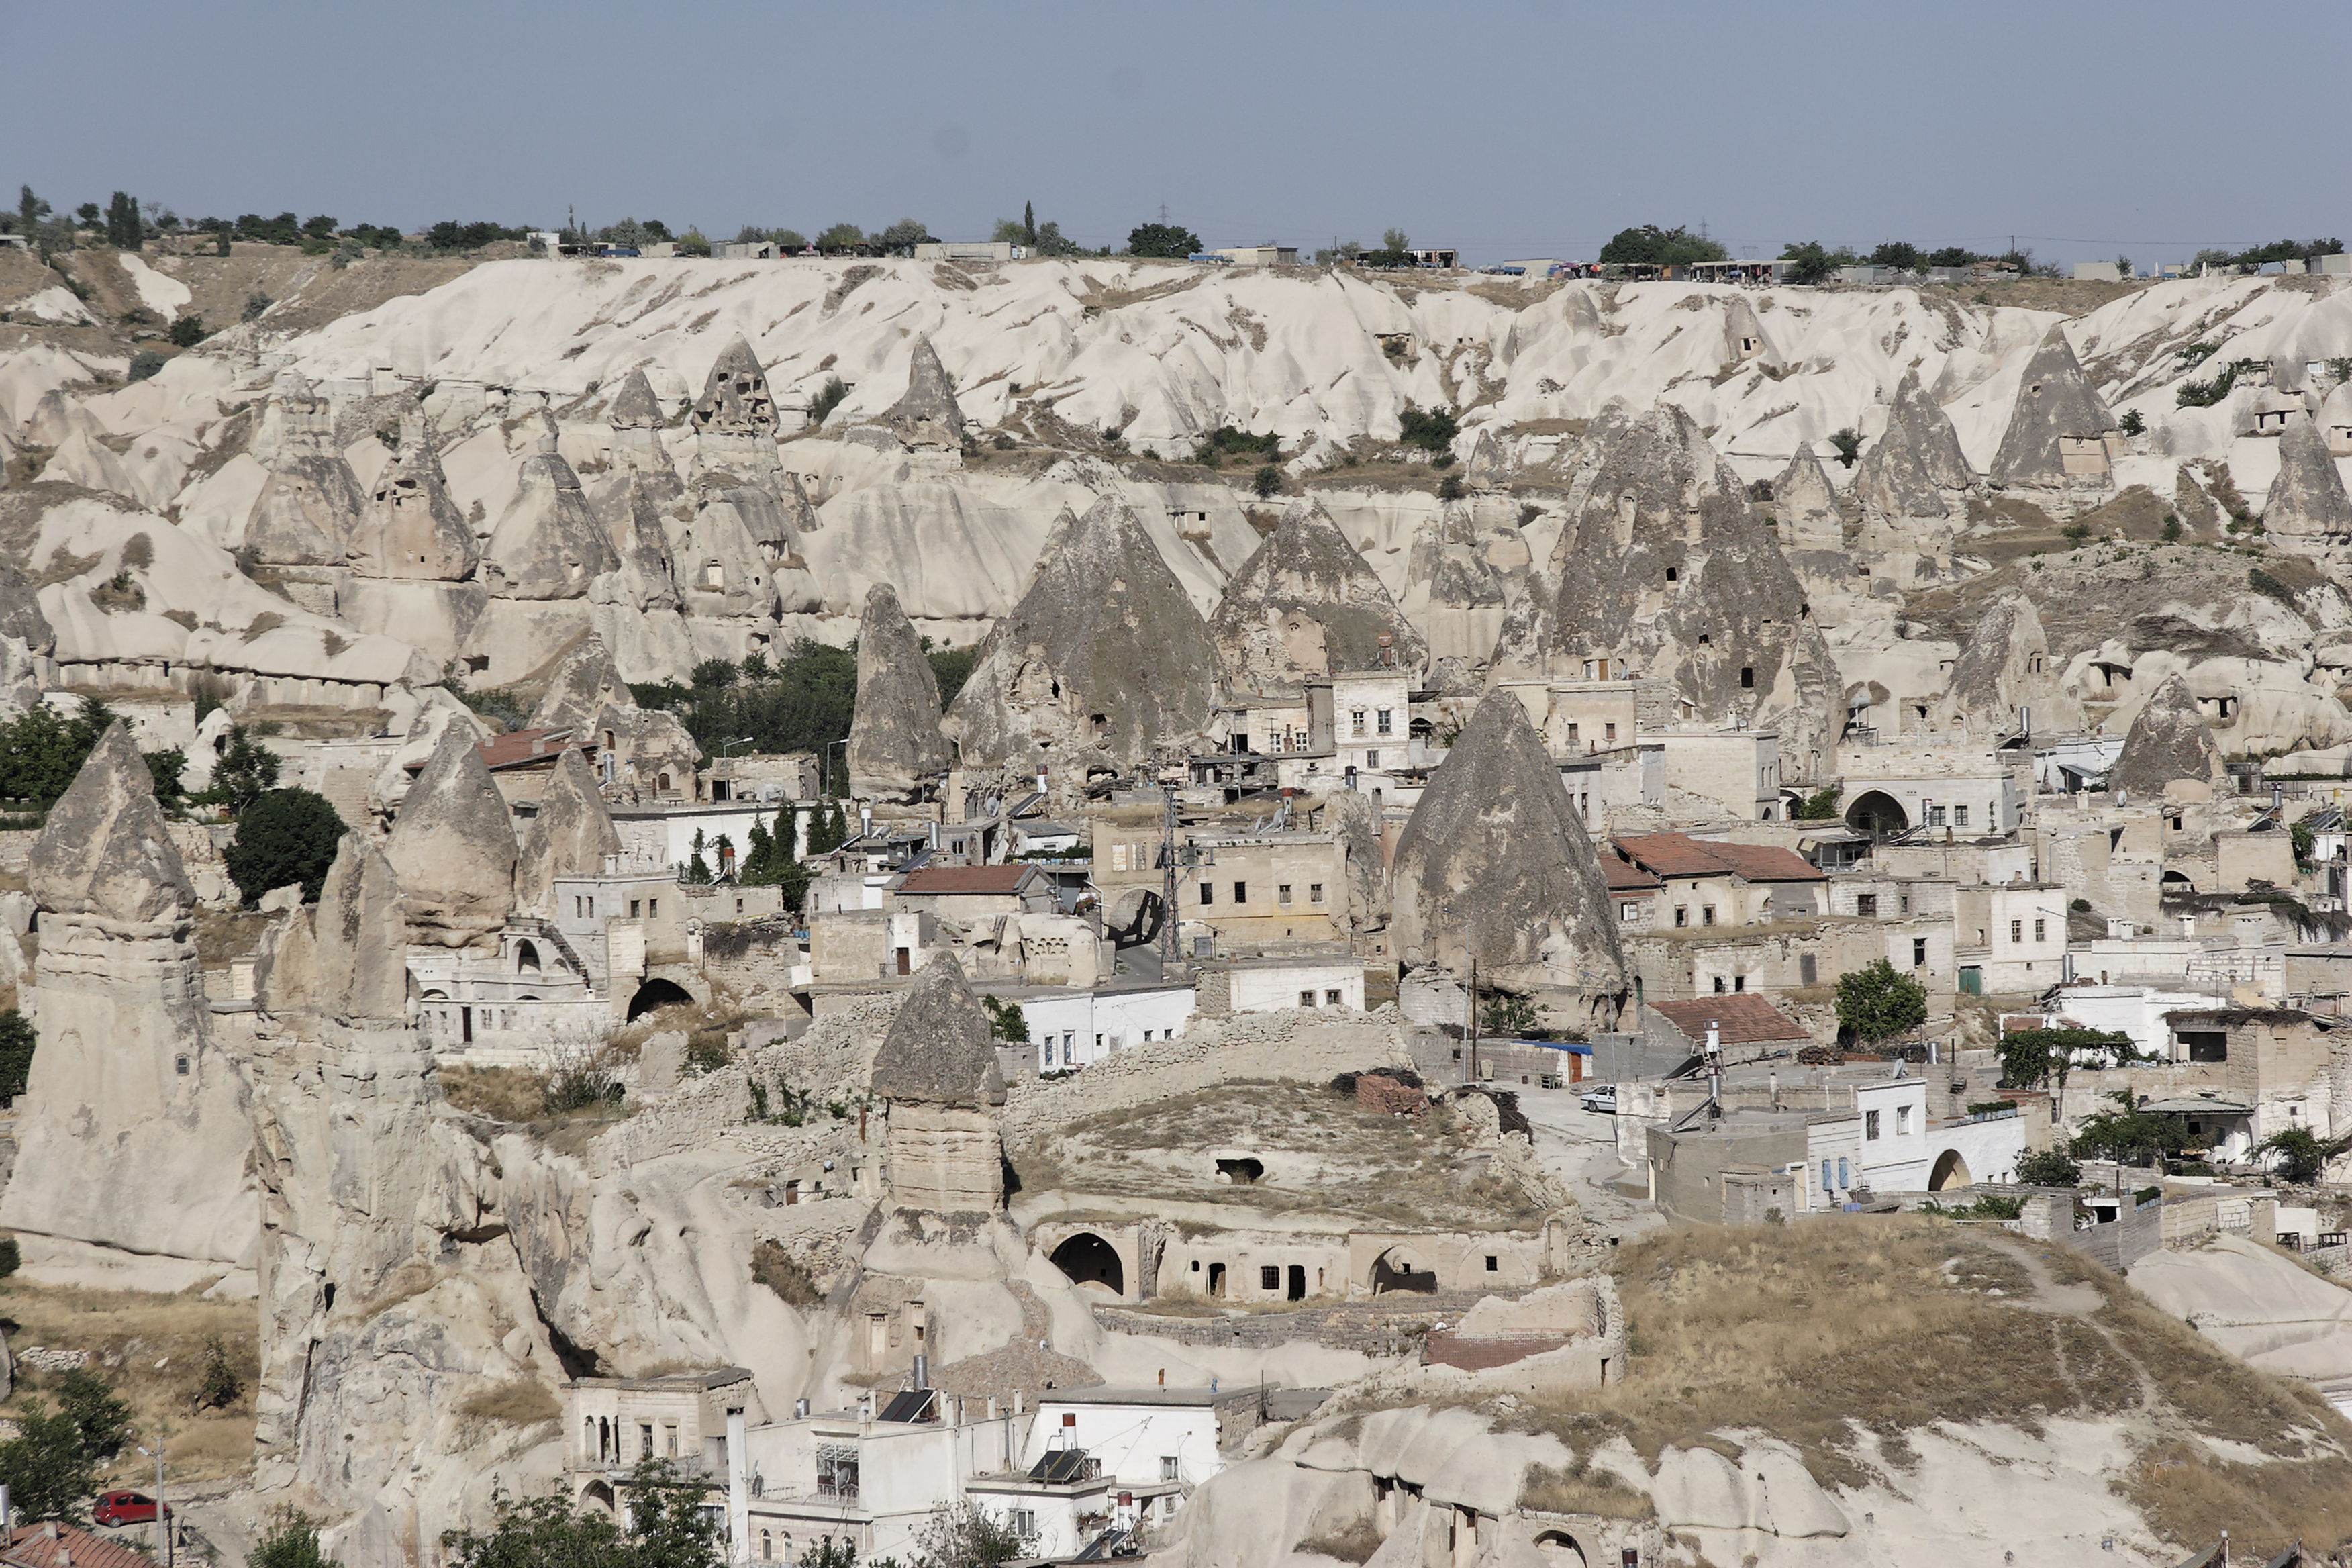 Fairy chimney rock formations, Goreme, Cappadocia Turkey 32.jpg - Goreme, Cappadocia, Turkey